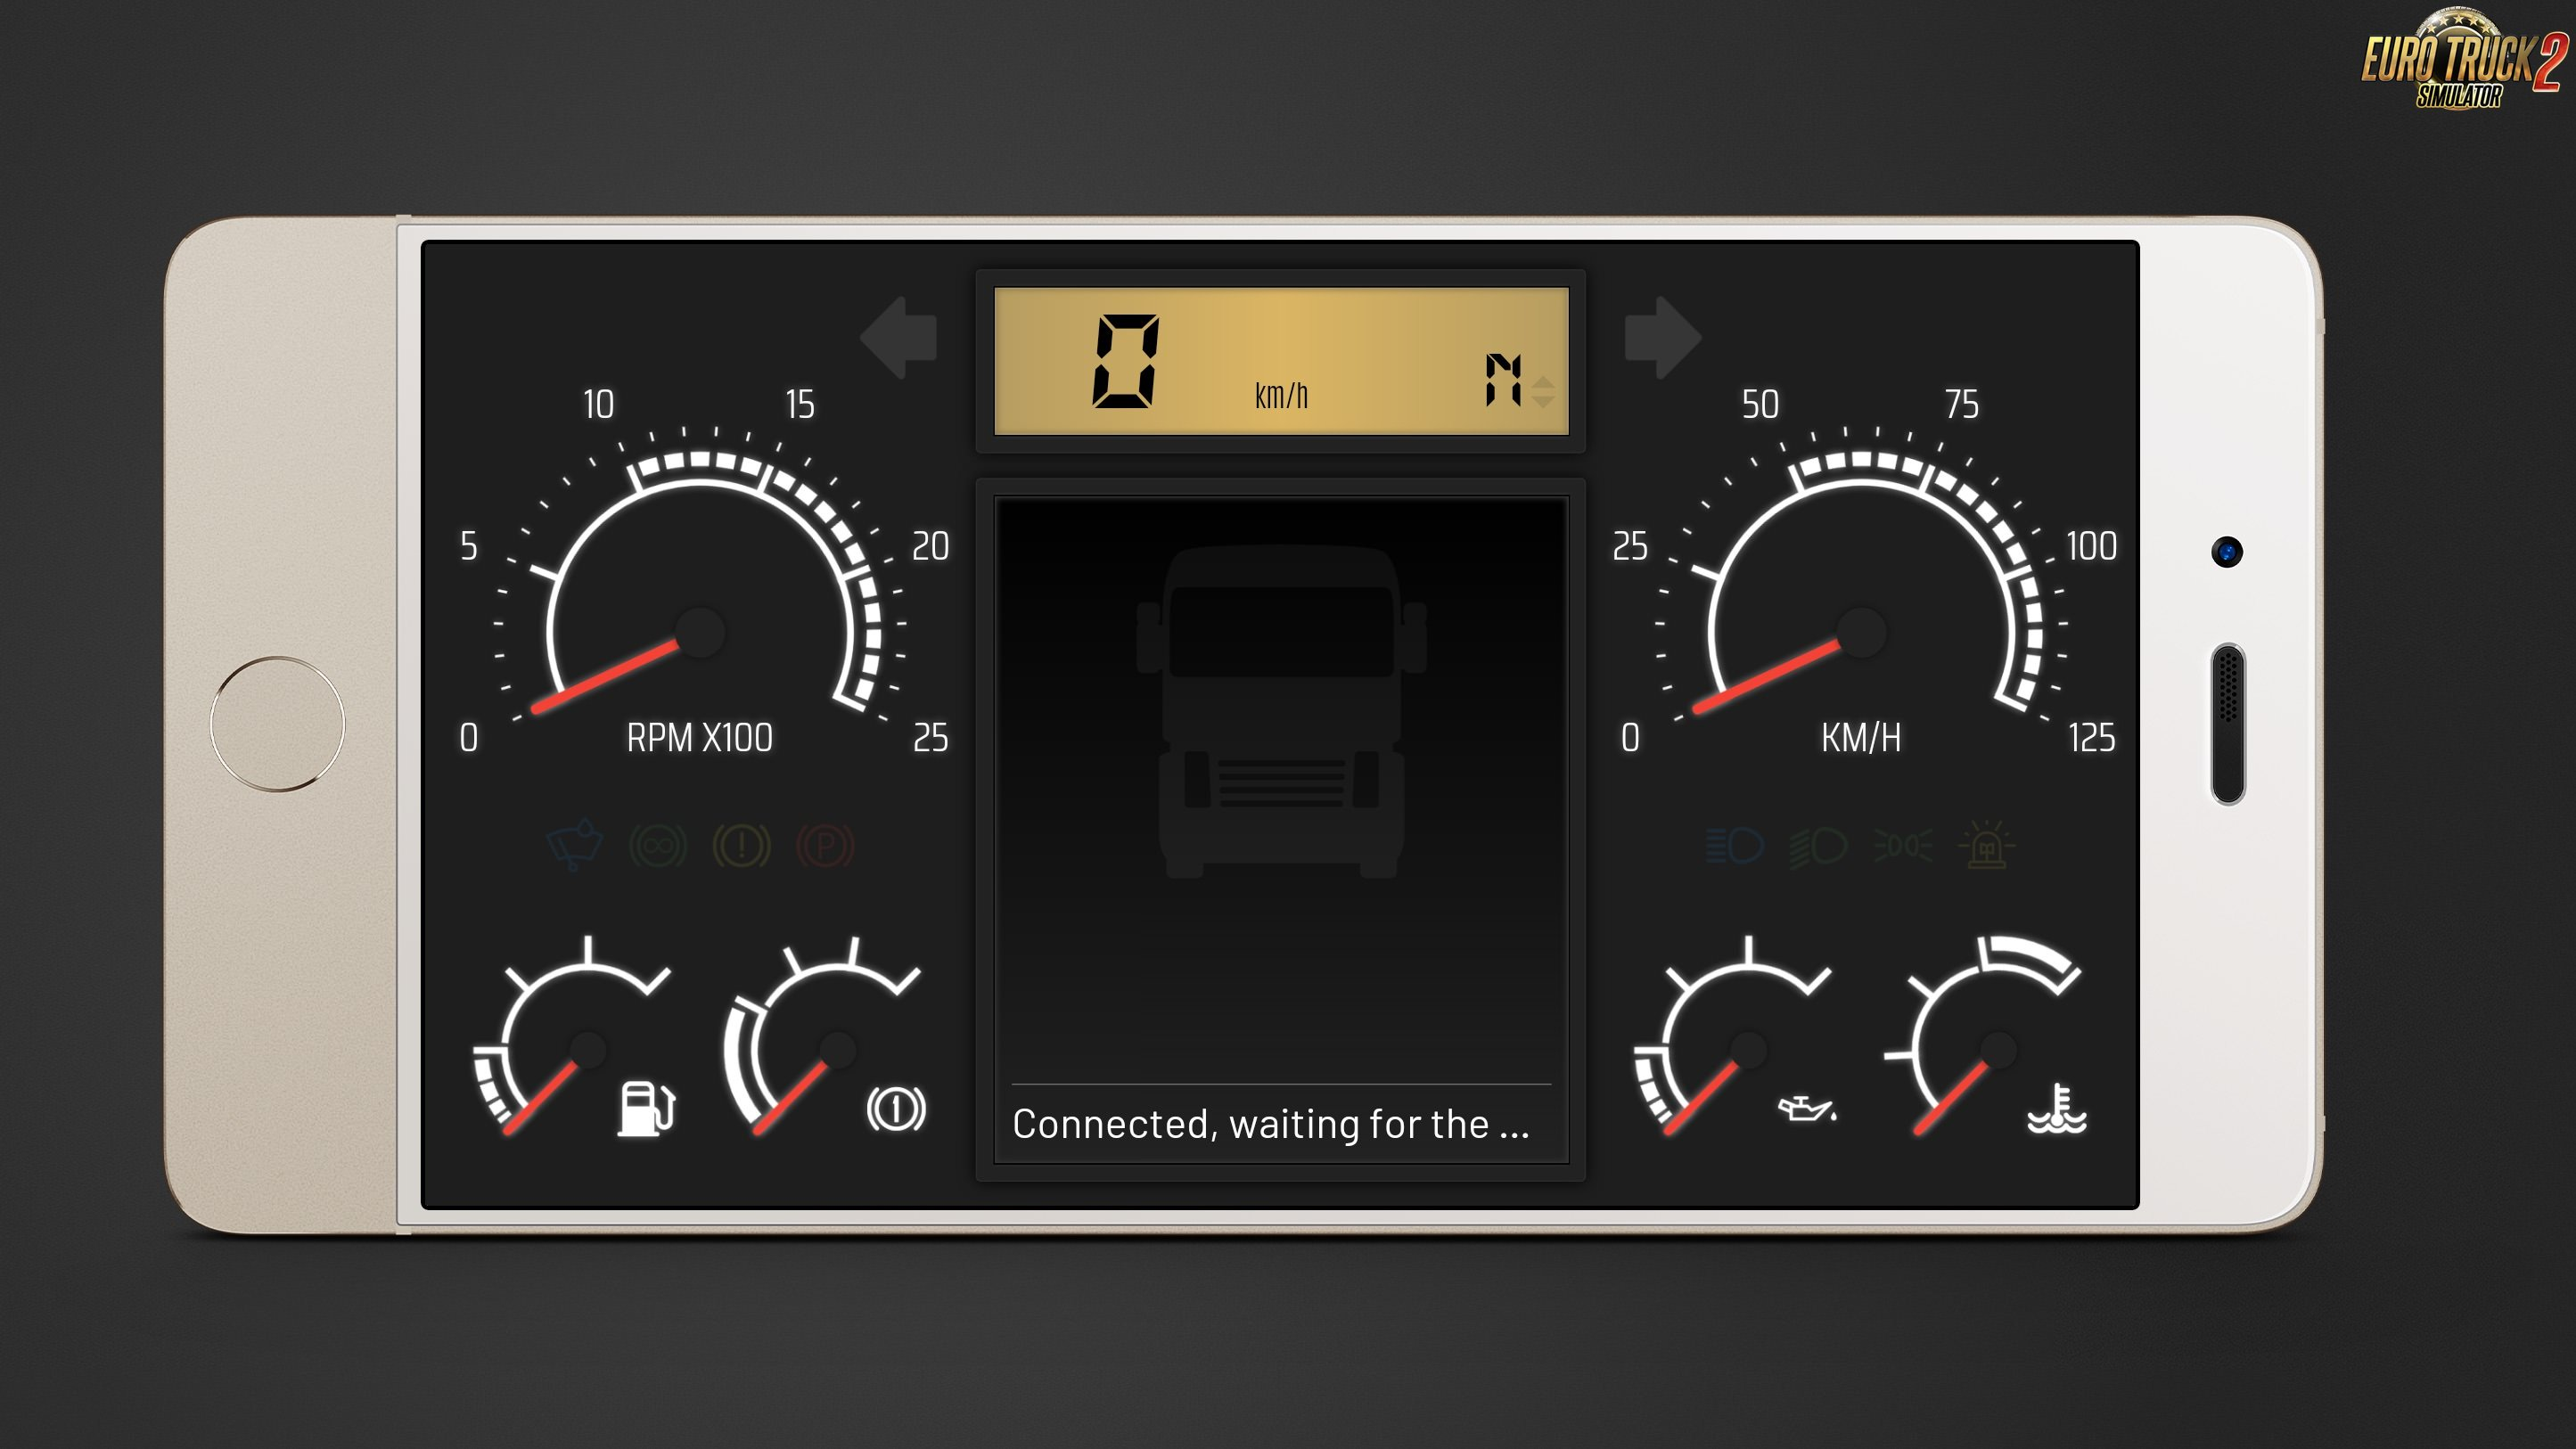 New Dashboard Skin (Telemetry Web Server) for Ets2 and Ats